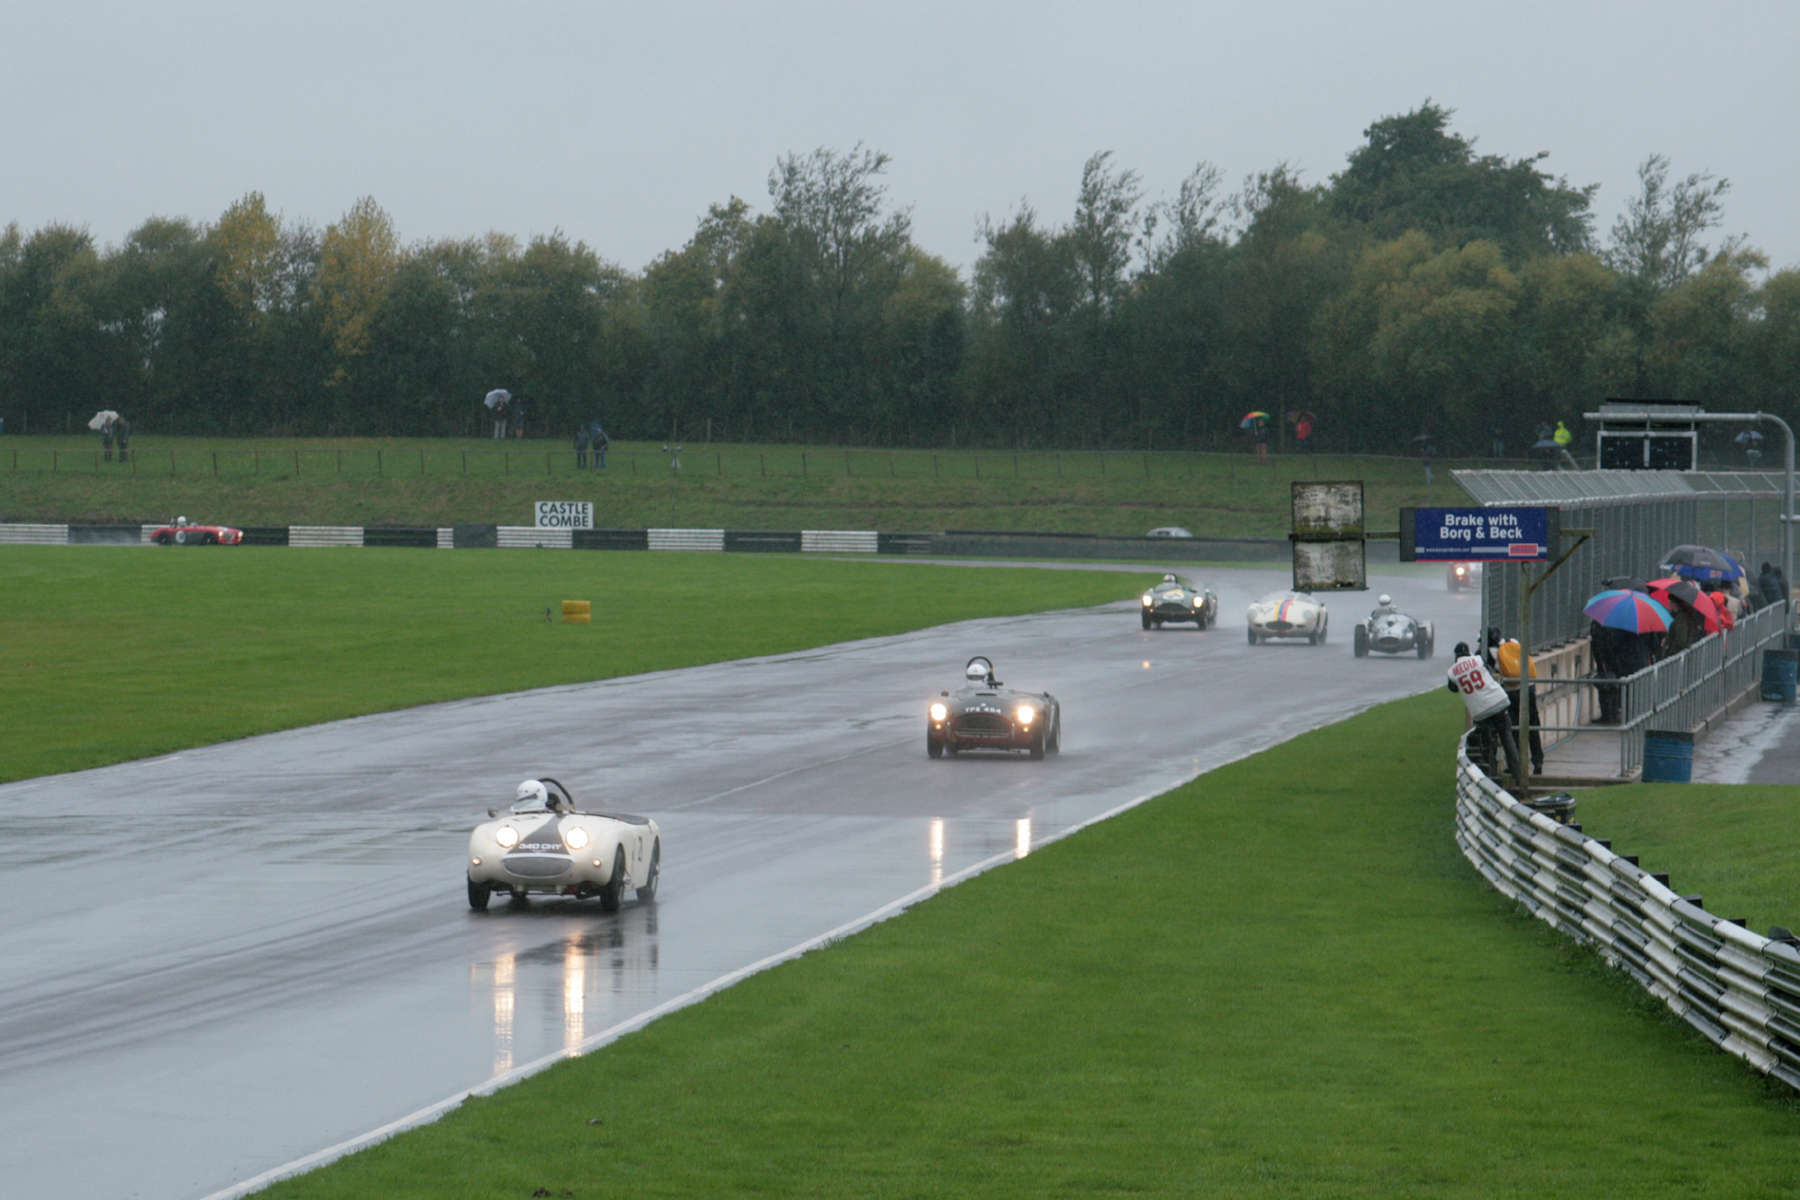 This and below give some idea of the conditions in qualifying                                                 Photos - John Turner